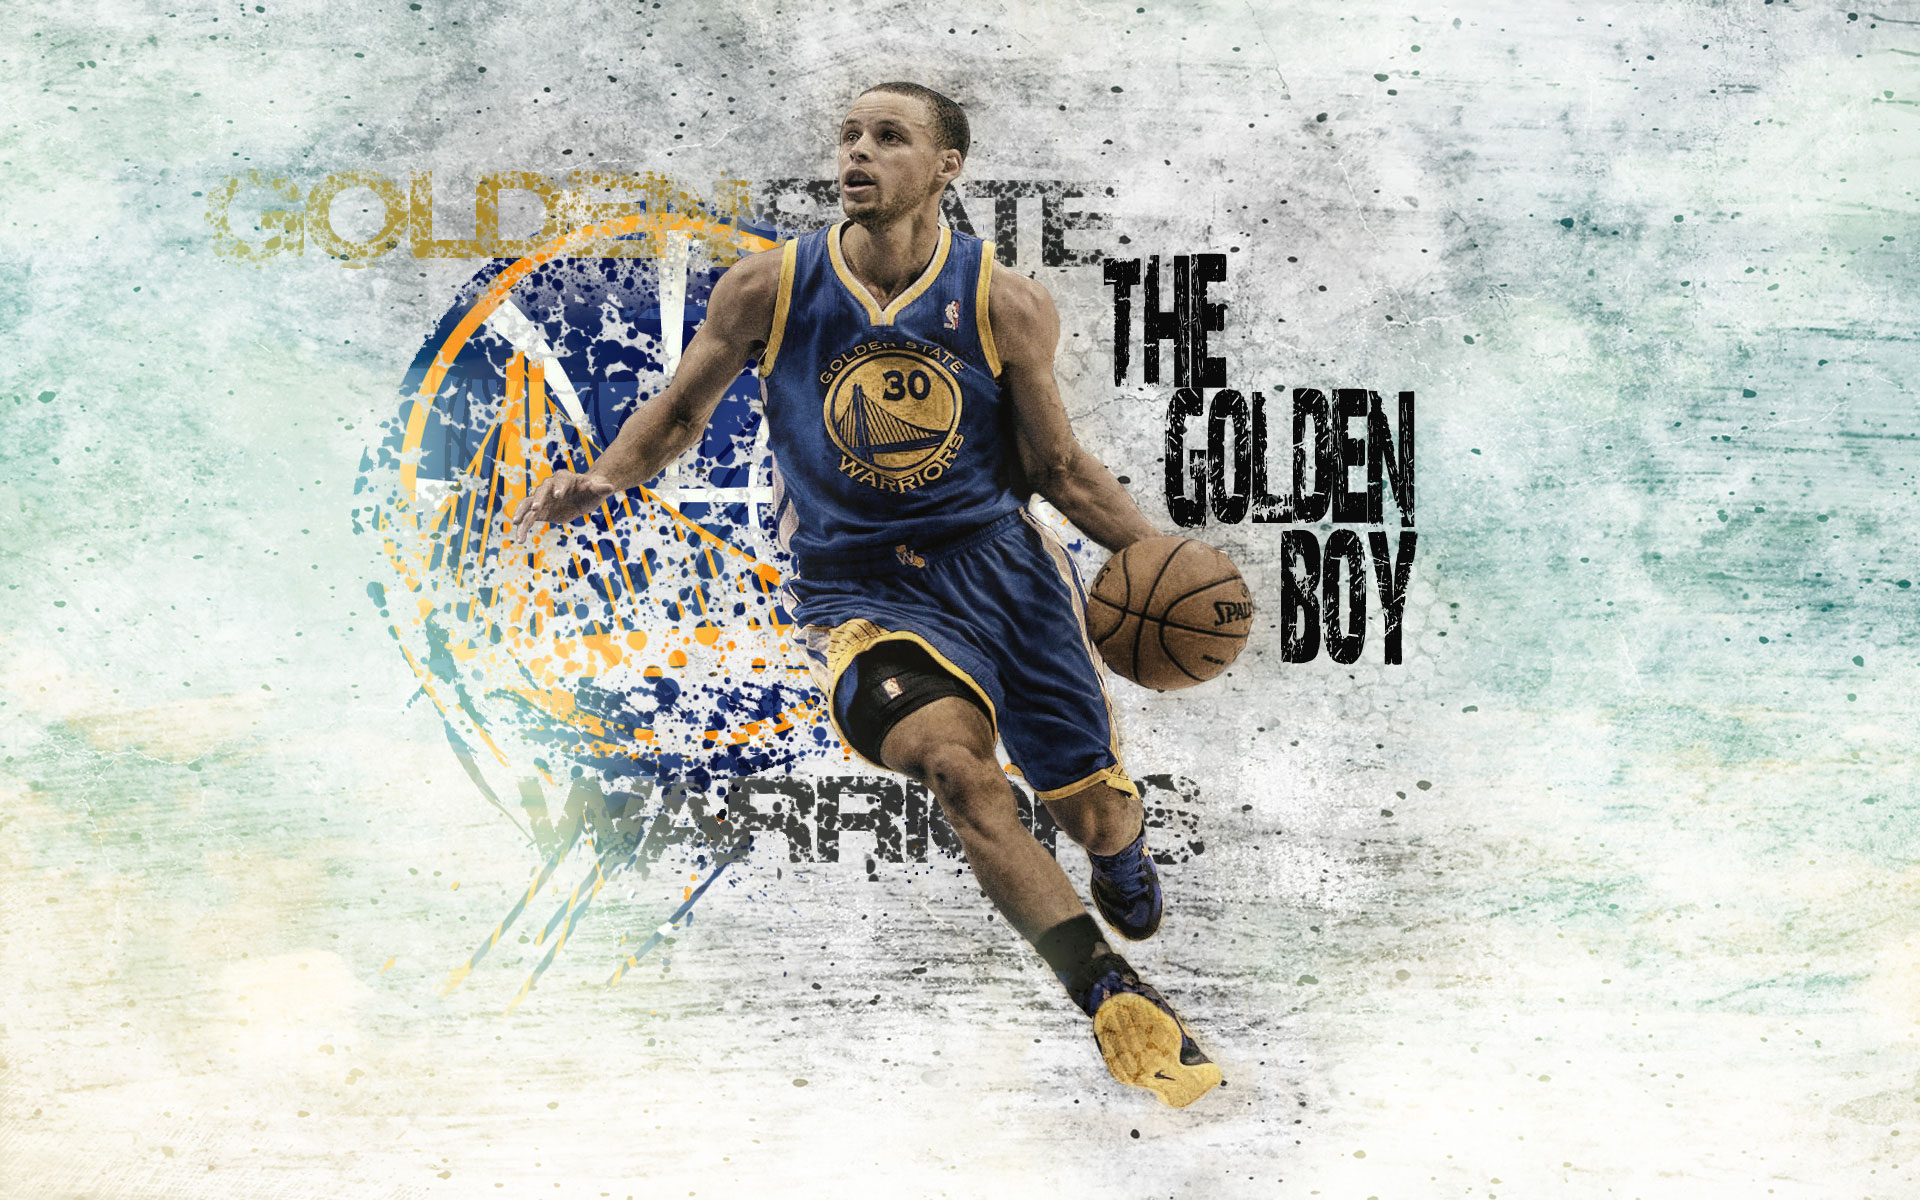 Stephen Curry Wallpaper HD download 1920x1200